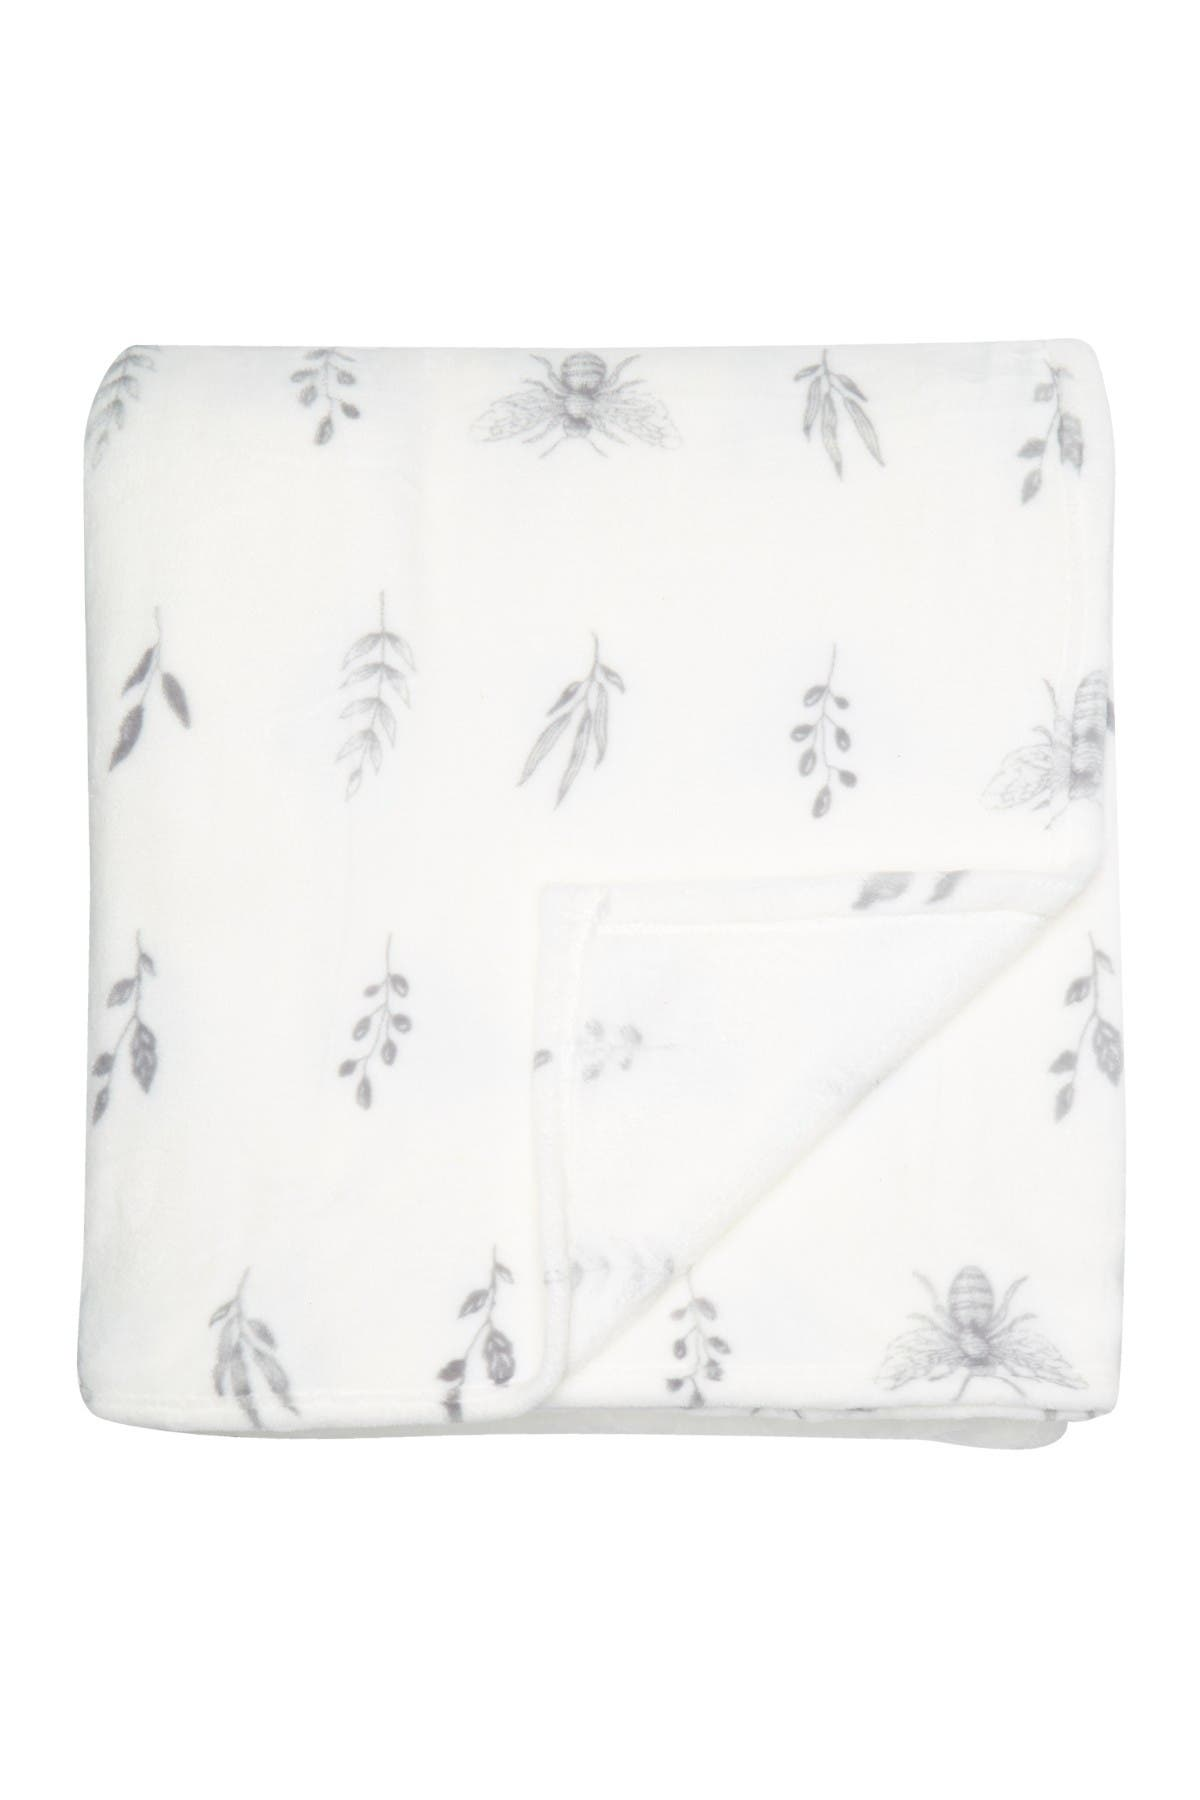 Image of S.L. HOME FASHIONS Flora & Fauna Print Blanket - King